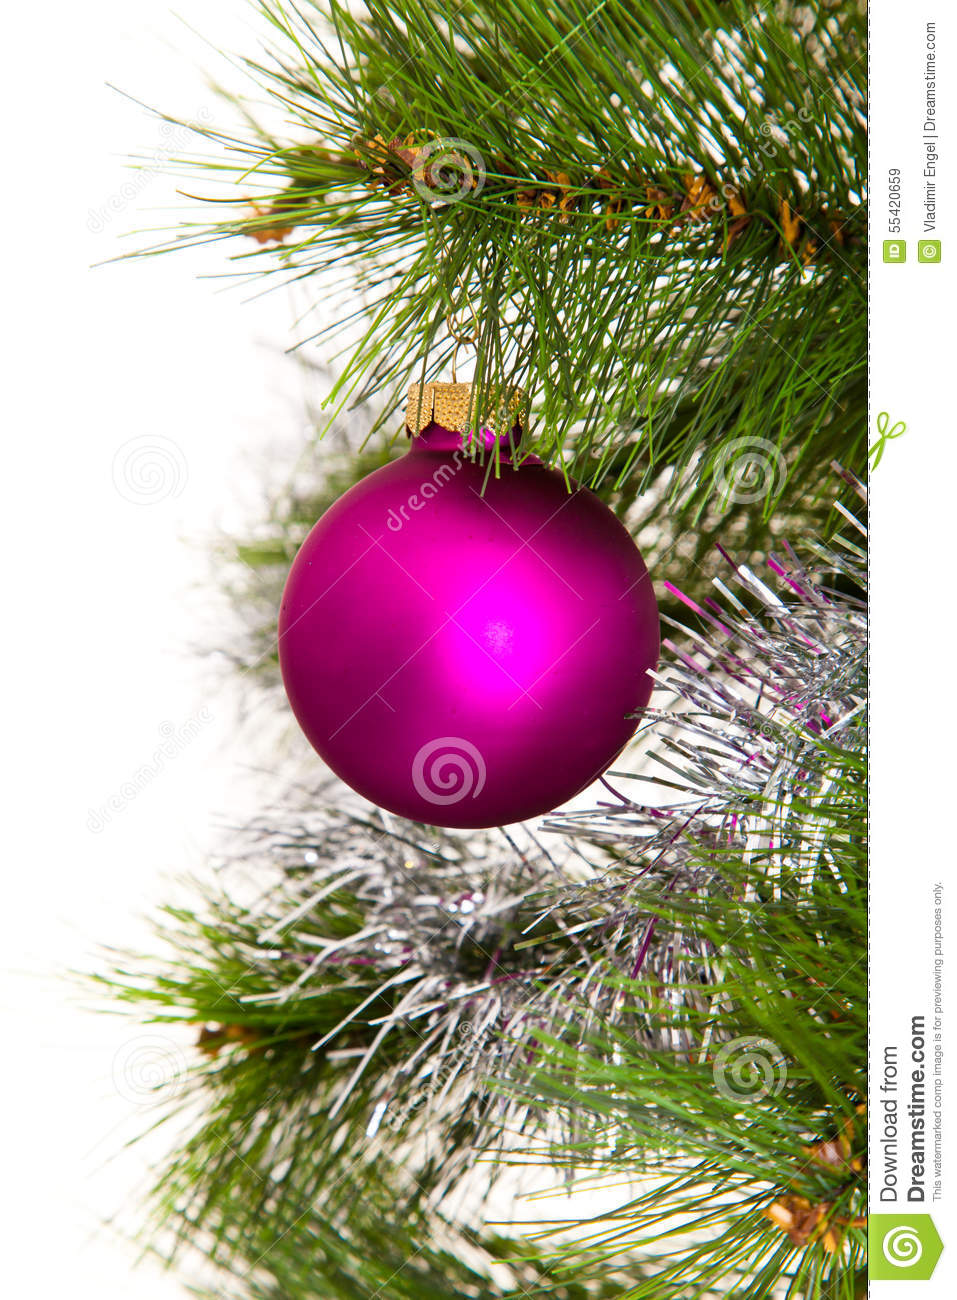 Christmas tree decorations 2016 new year stock photo for Christmas decorations 2016